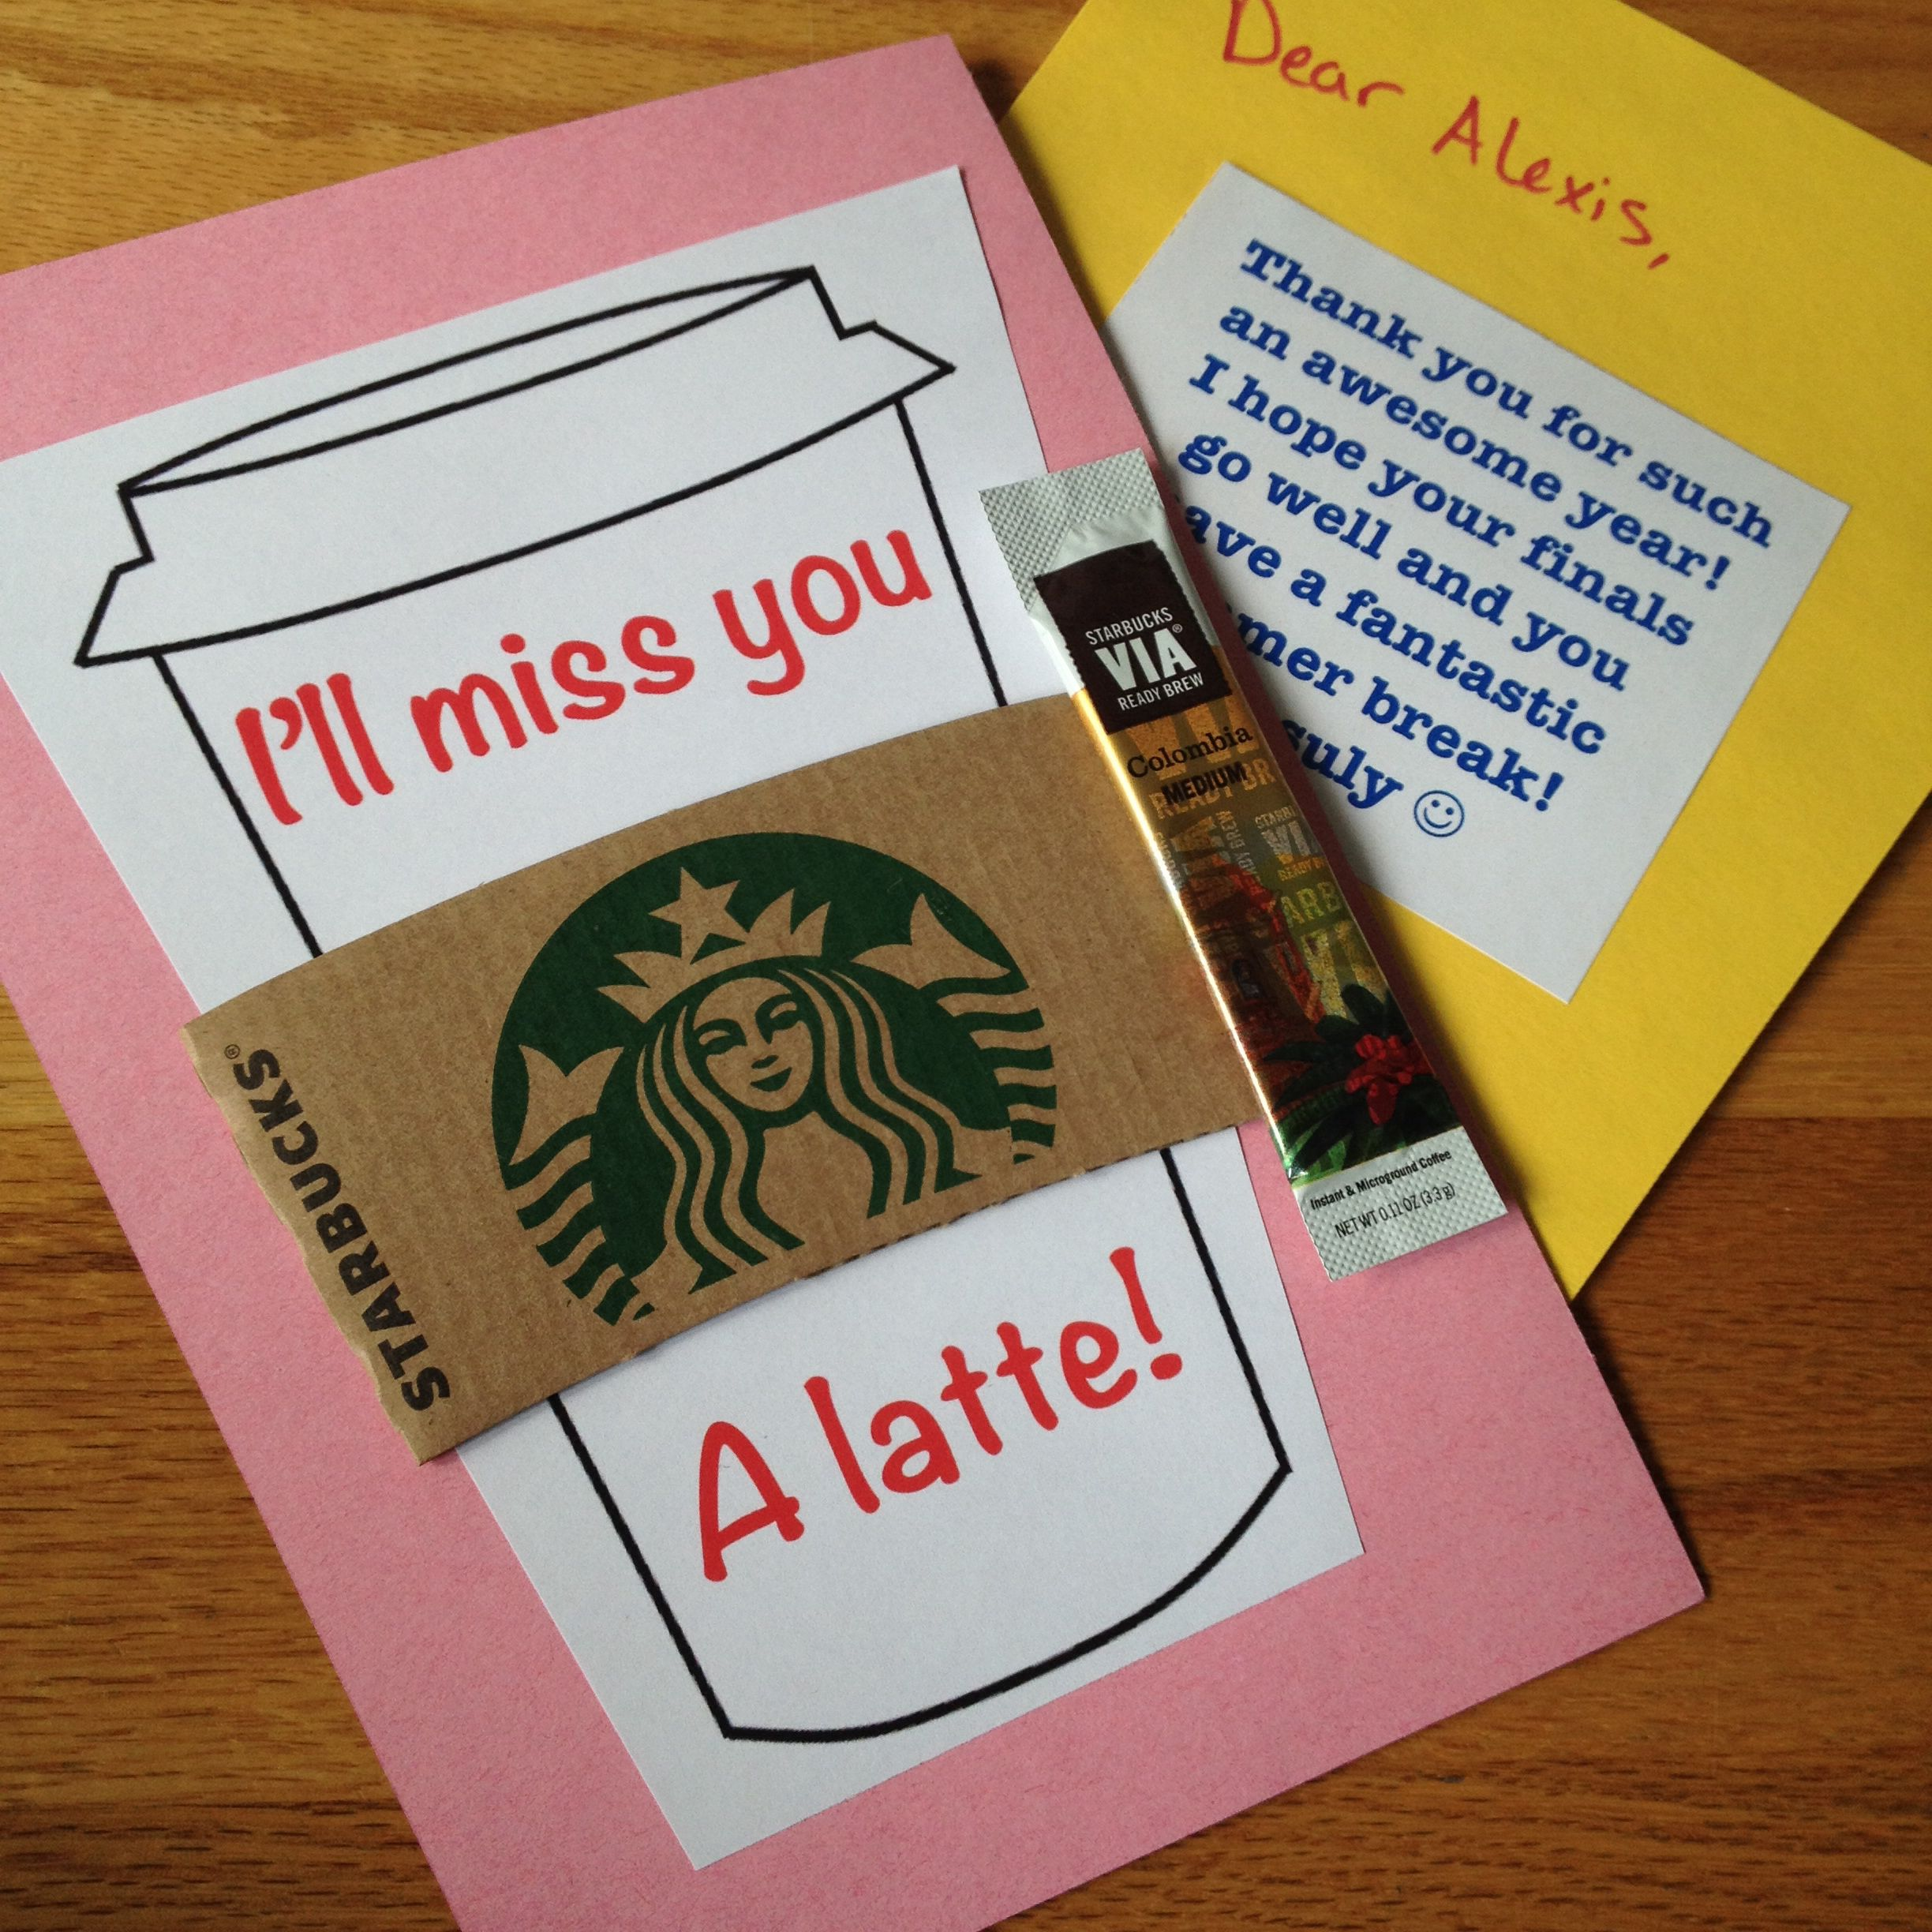 Ill miss you a latte end of the year cards for my